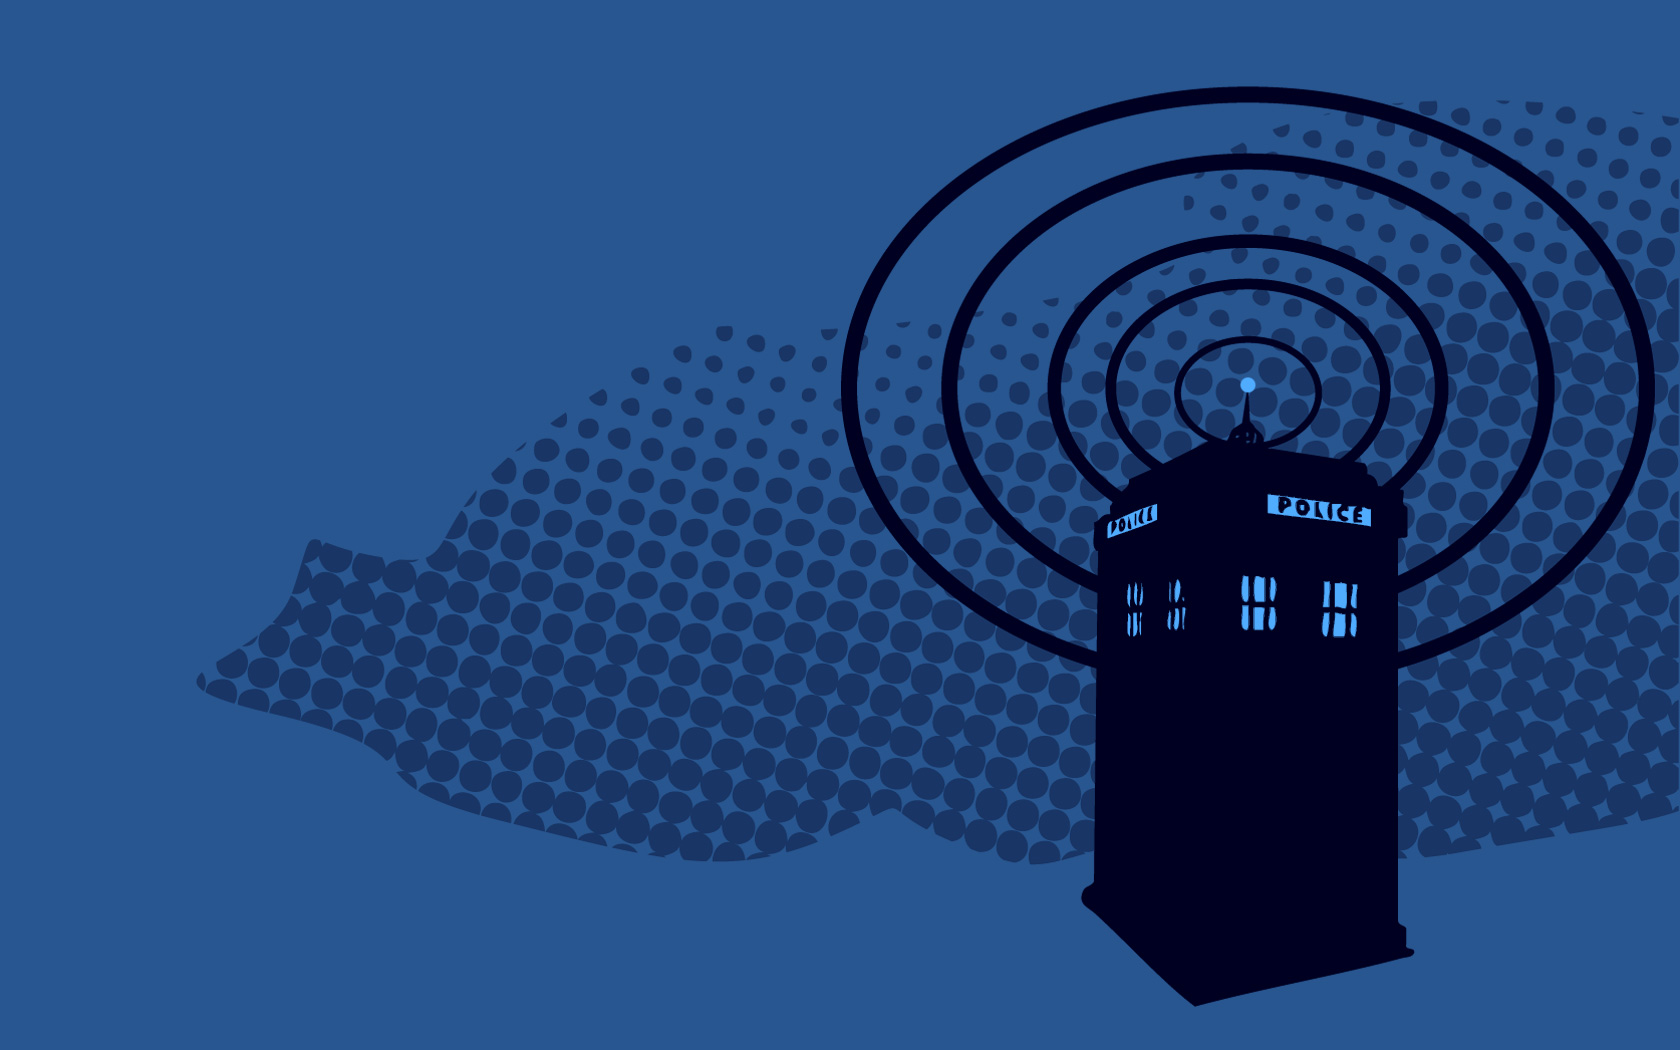 dr who wallpapers for desktop - wallpapersafari